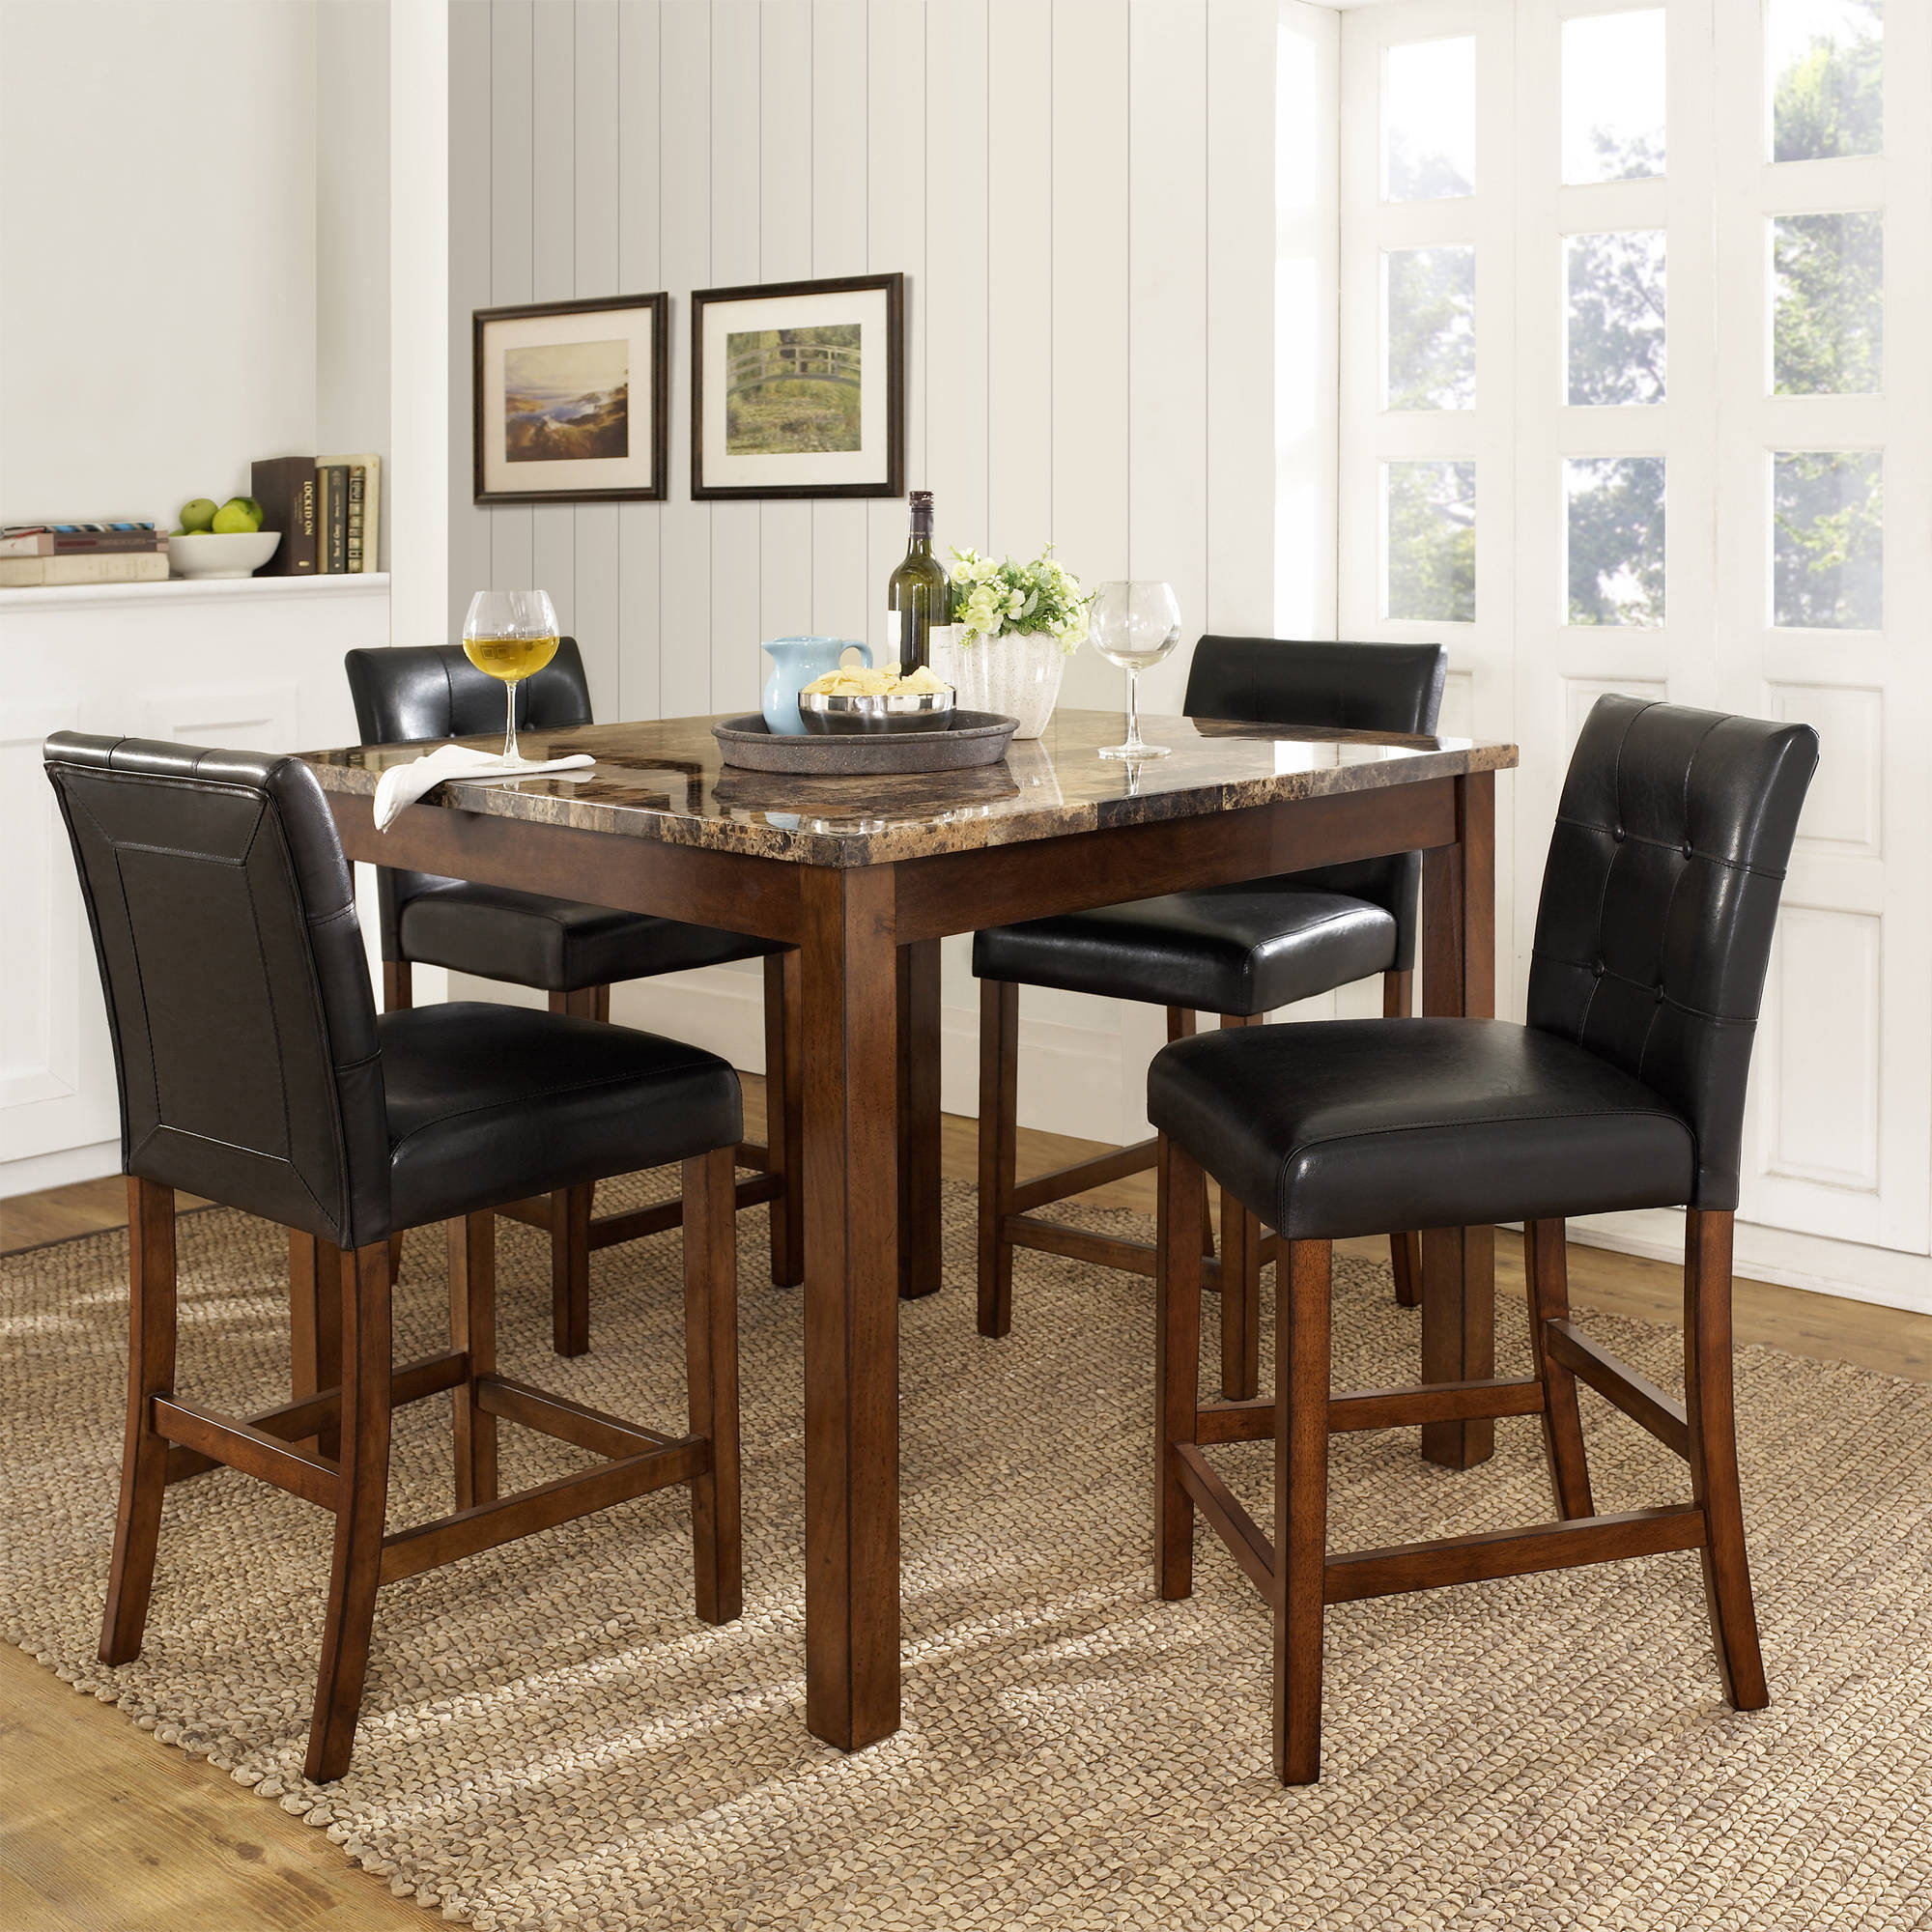 Dorel Living Andover Faux Marble Counter Height Dining Set, Cherry